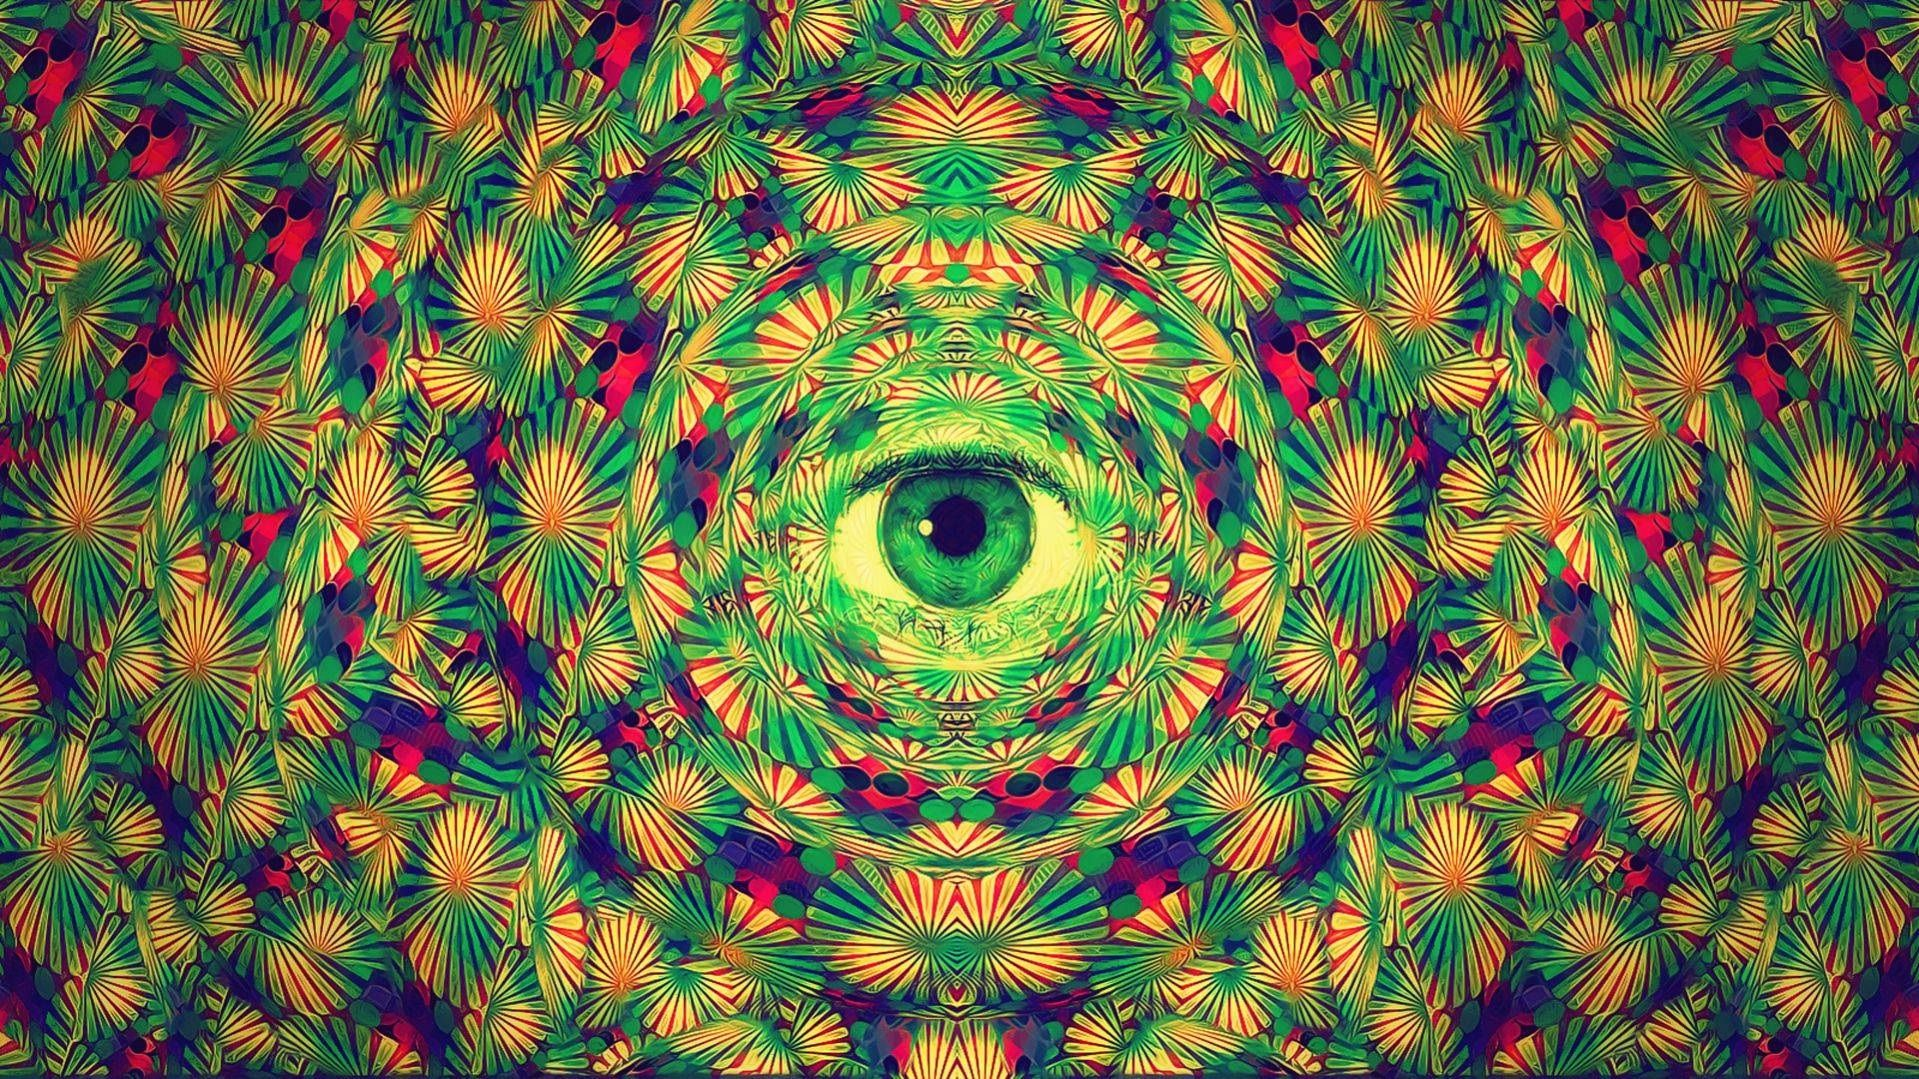 Digital trippy psychedelic - http://trippy.me